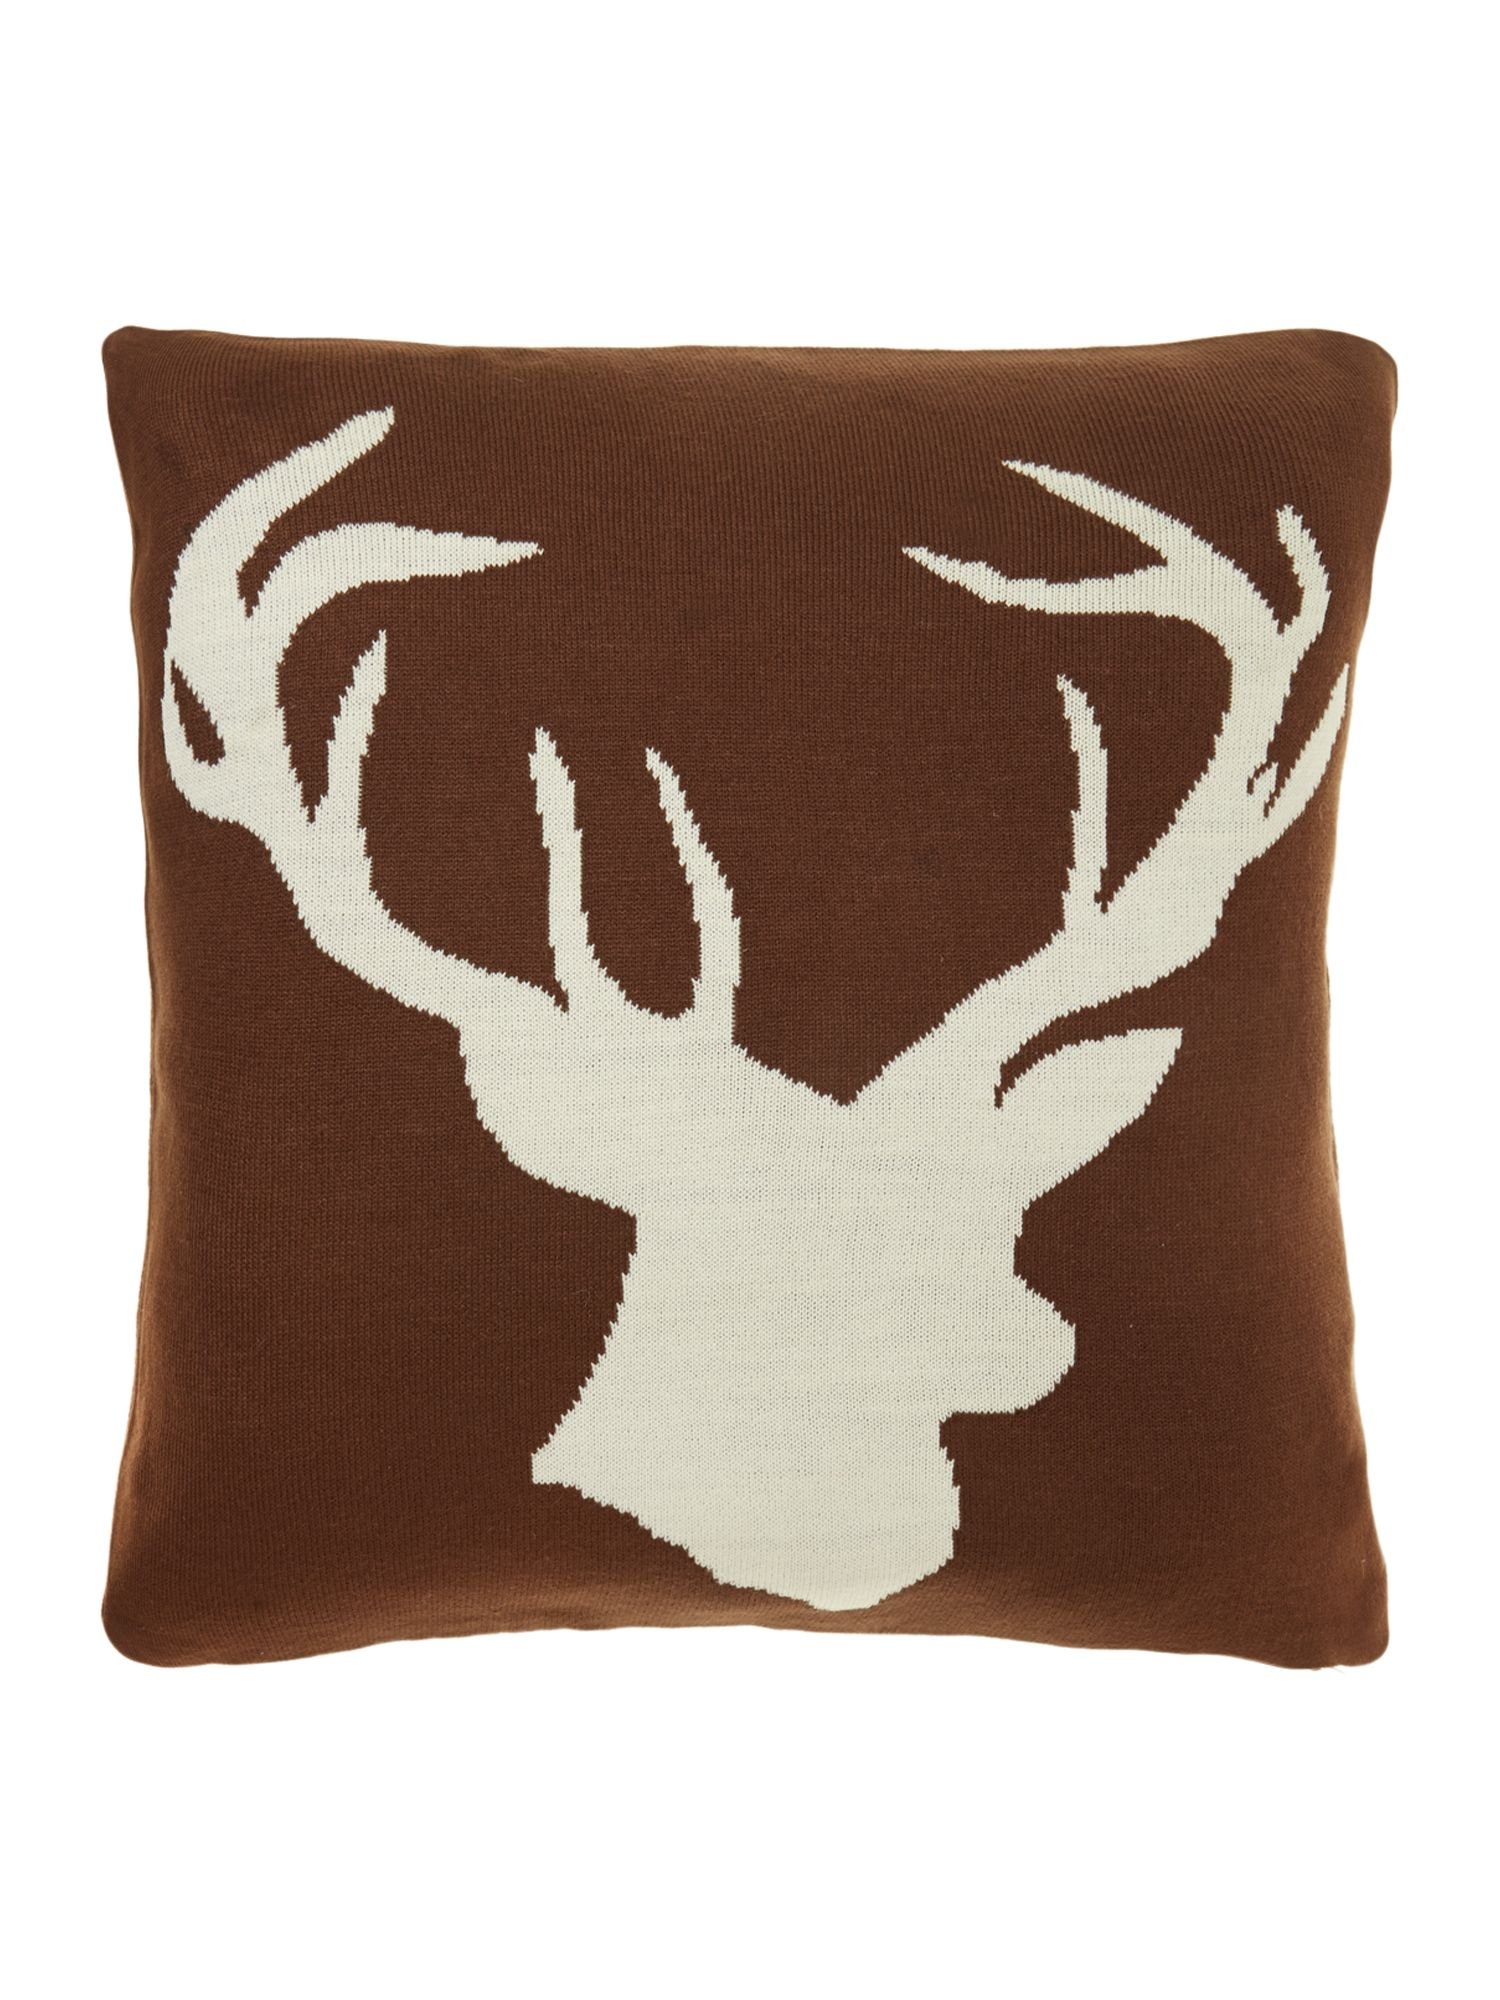 Stag knitted cushion